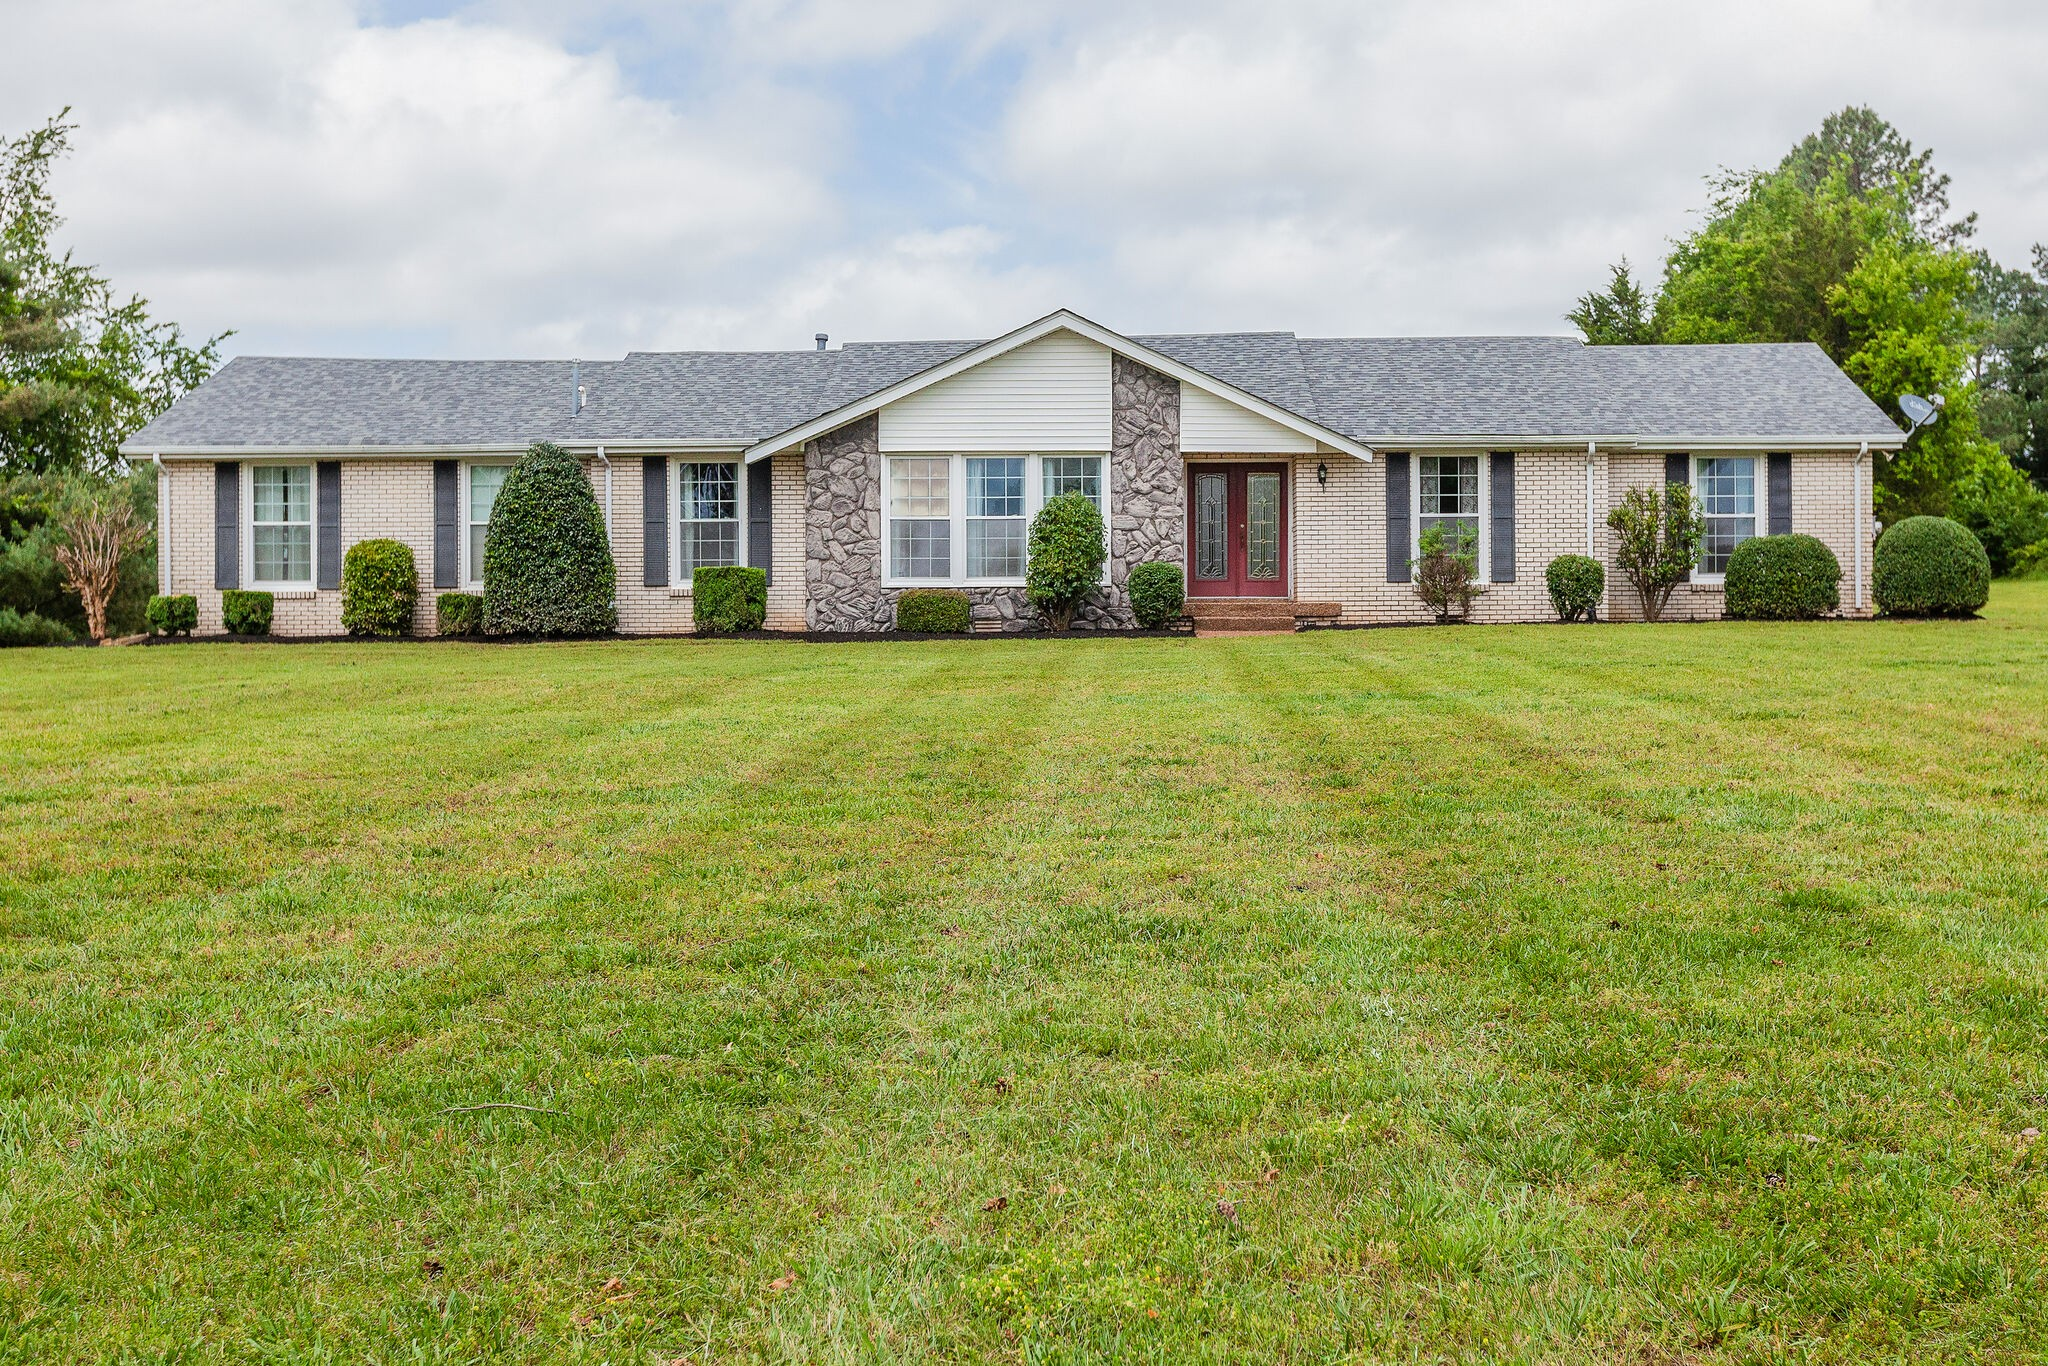 Beautiful, level land, with great renovation or dream home potential. This home has only had one owner and sits on 3 acres in Arrington. Roof 3-4 years old, HVAC in 2019, water heater in 2019, & septic pumped in 2019. The bones are very good! Professional photos coming soon. Seller will not make any repairs, selling as-is.